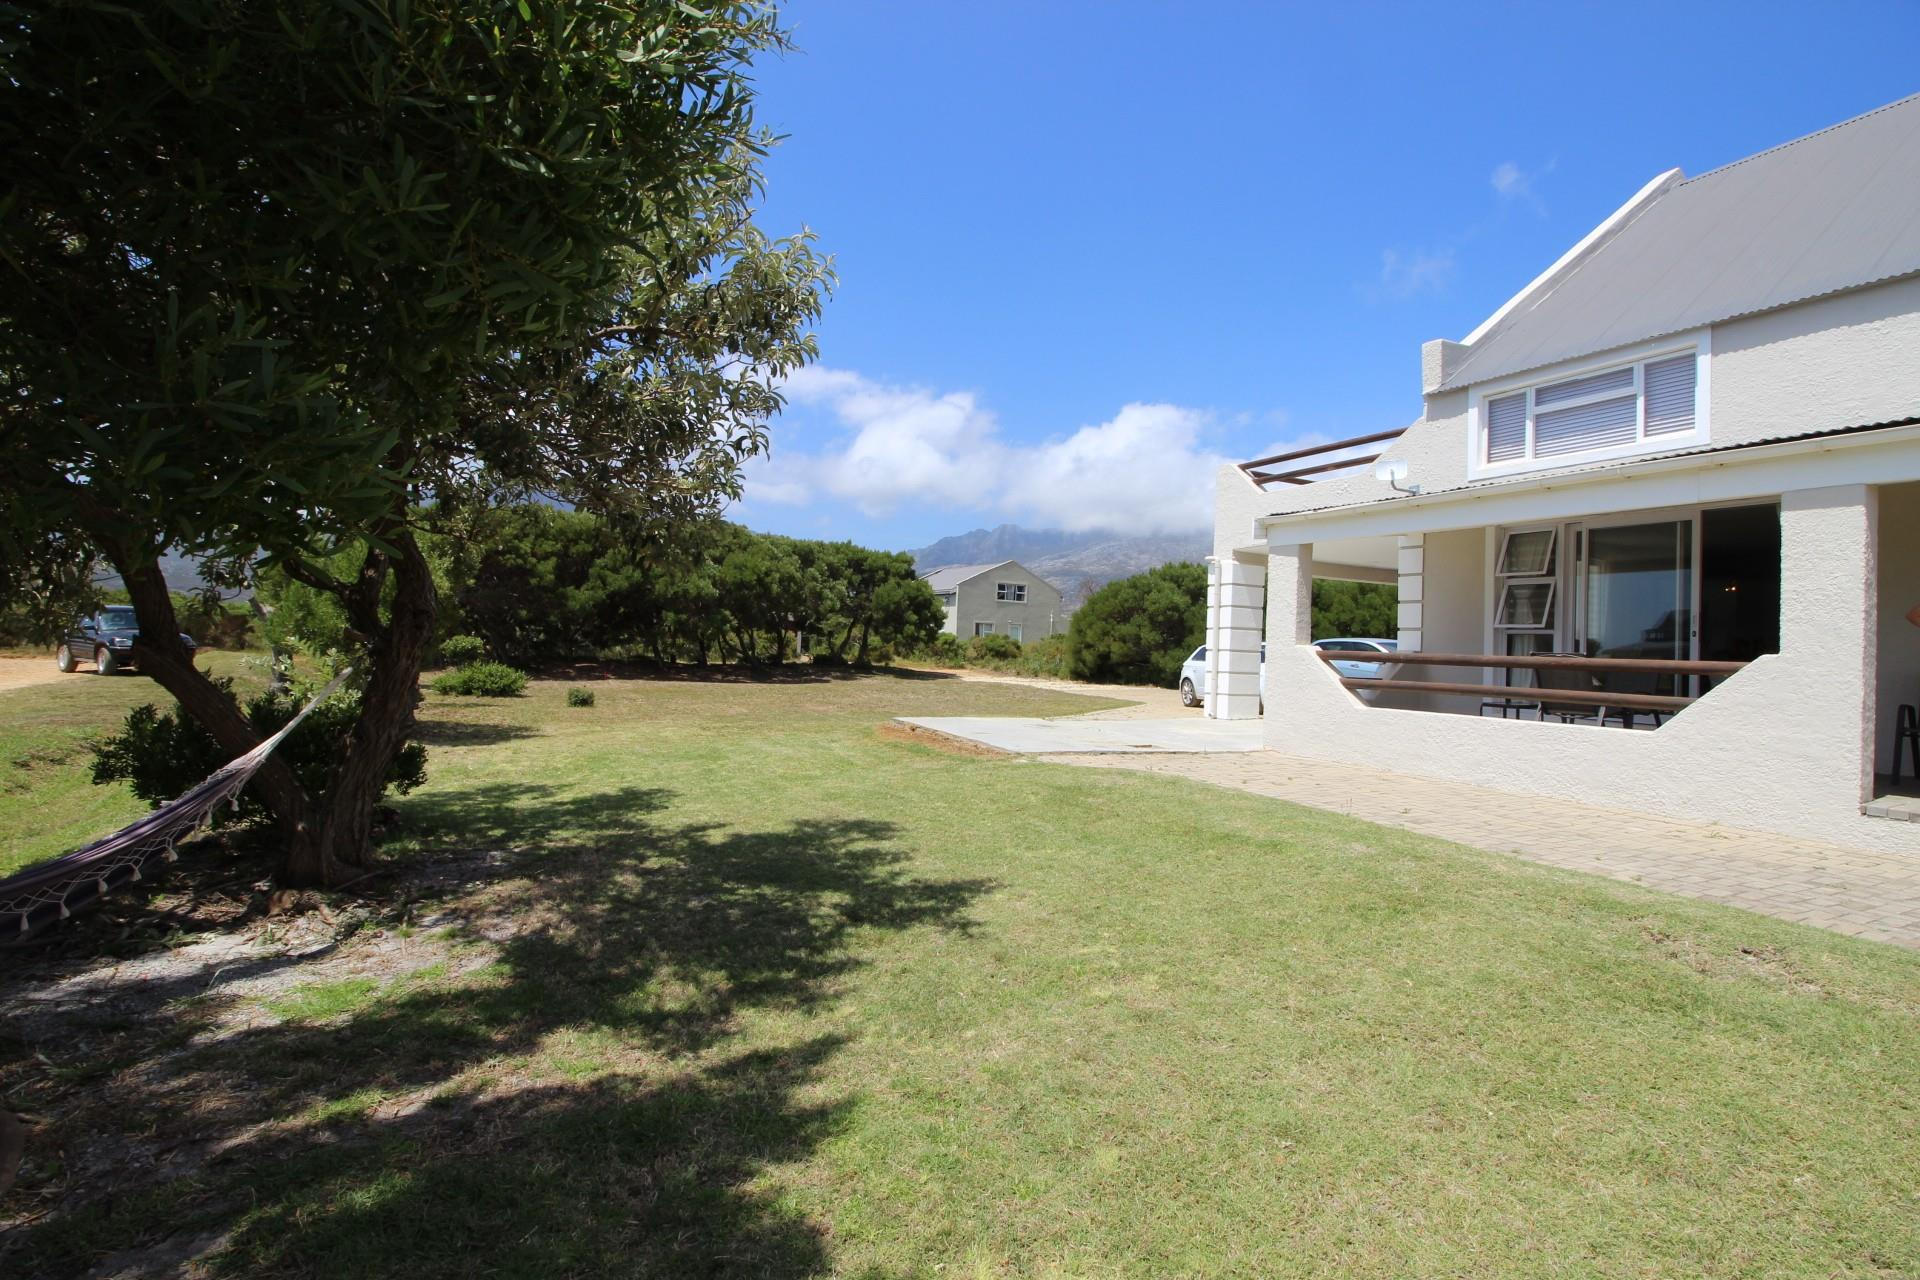 7 Bedroom House For Sale in Pringle Bay